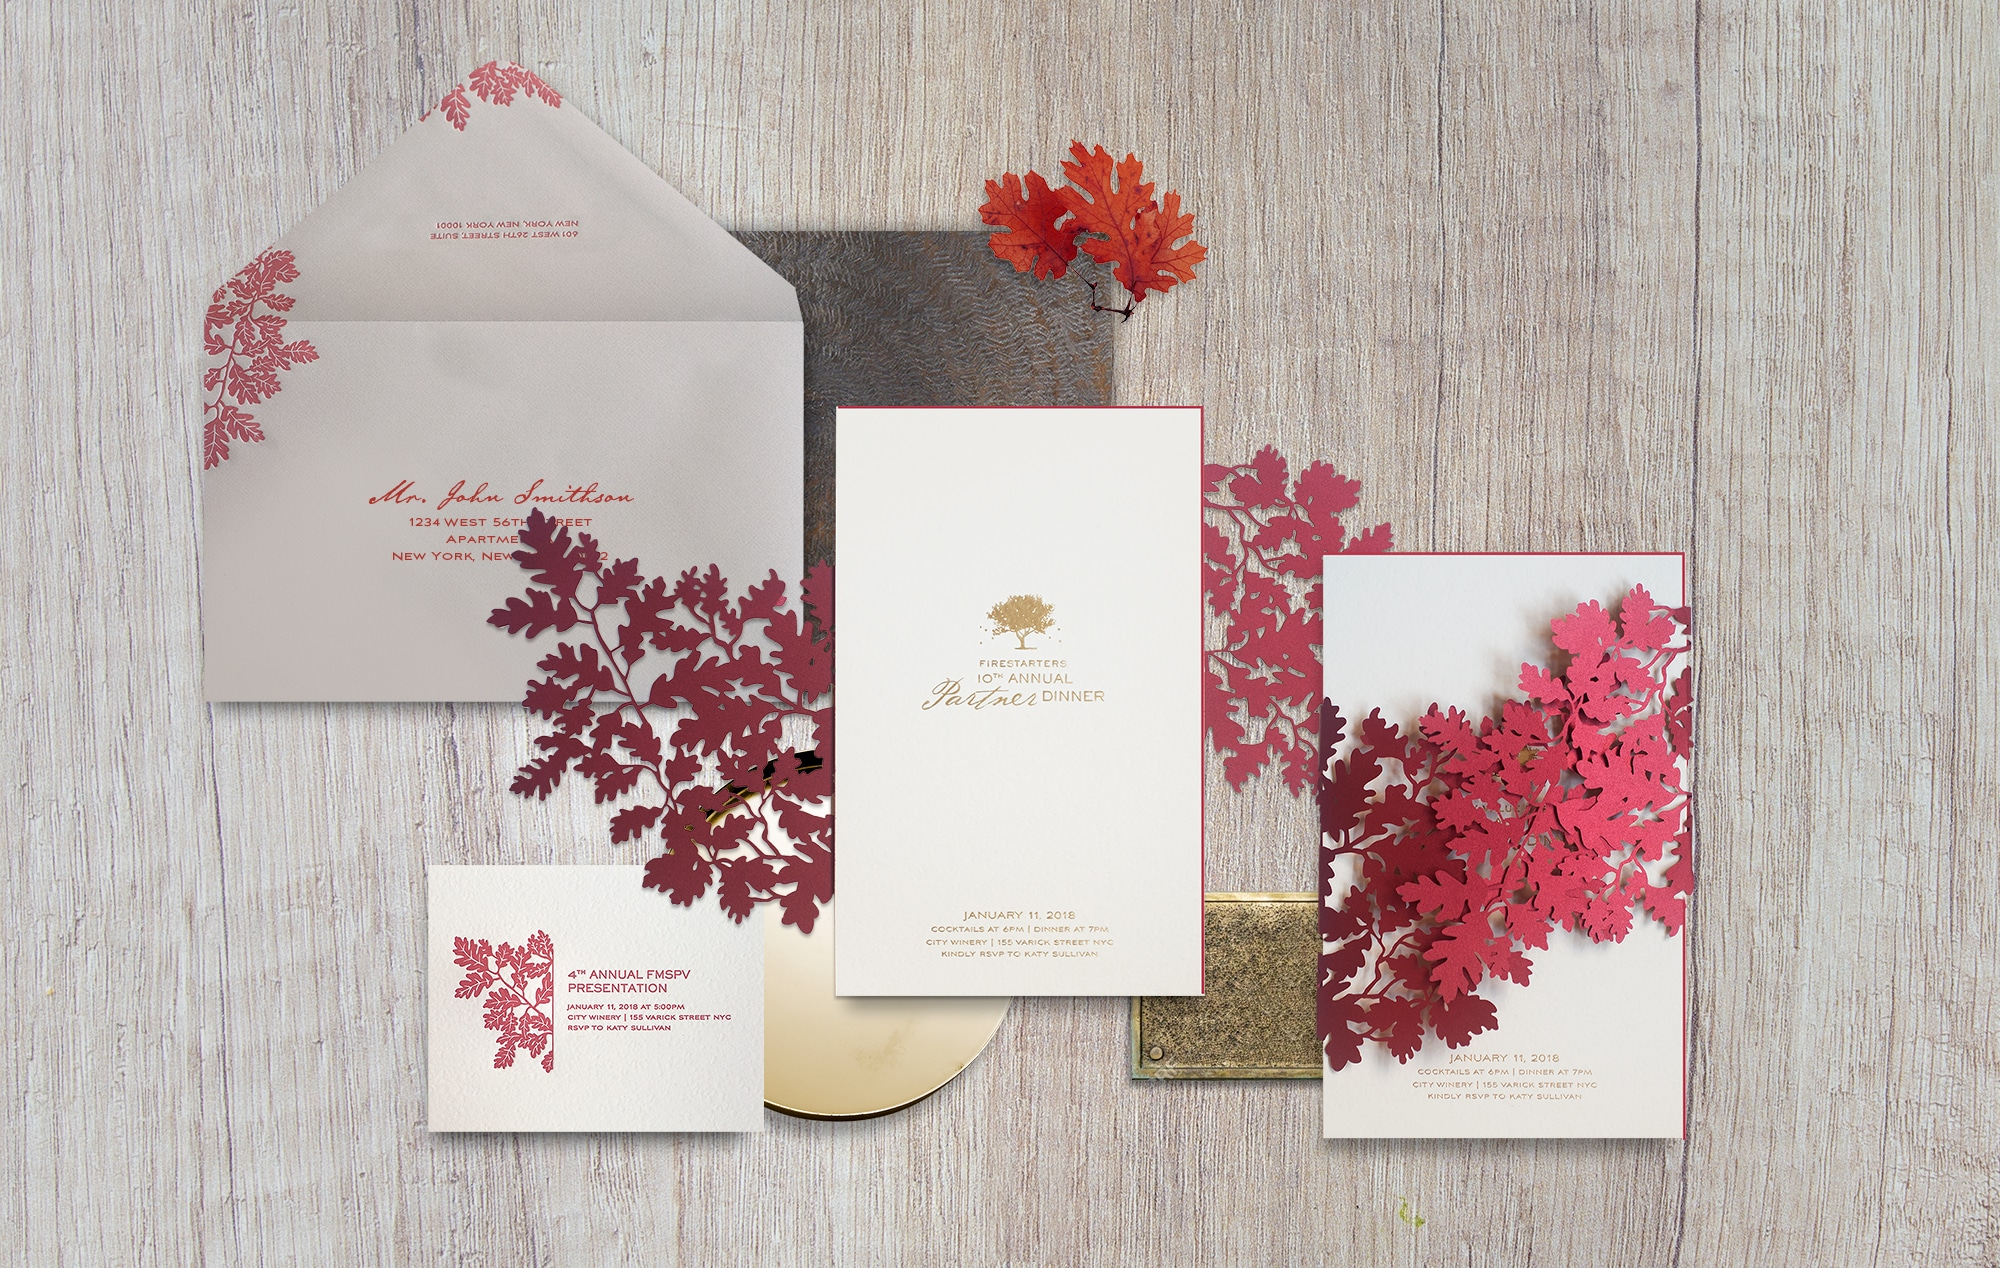 Laser cut maple leaf invitation